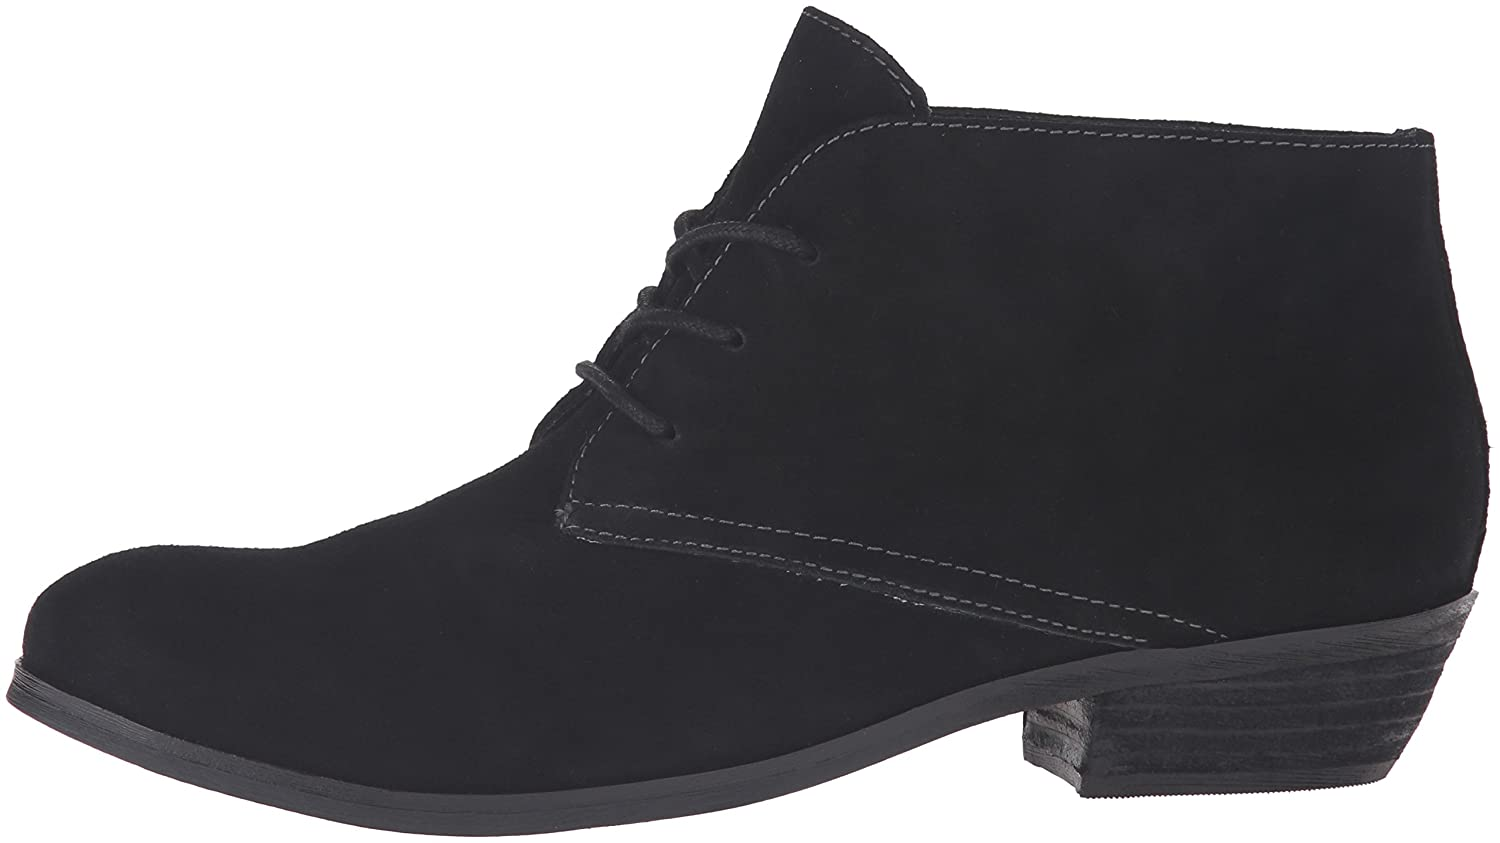 SoftWalk Women's Ramsey Boot Suede B019QMJMRY 12 N US|Black Suede Boot 0b9c86